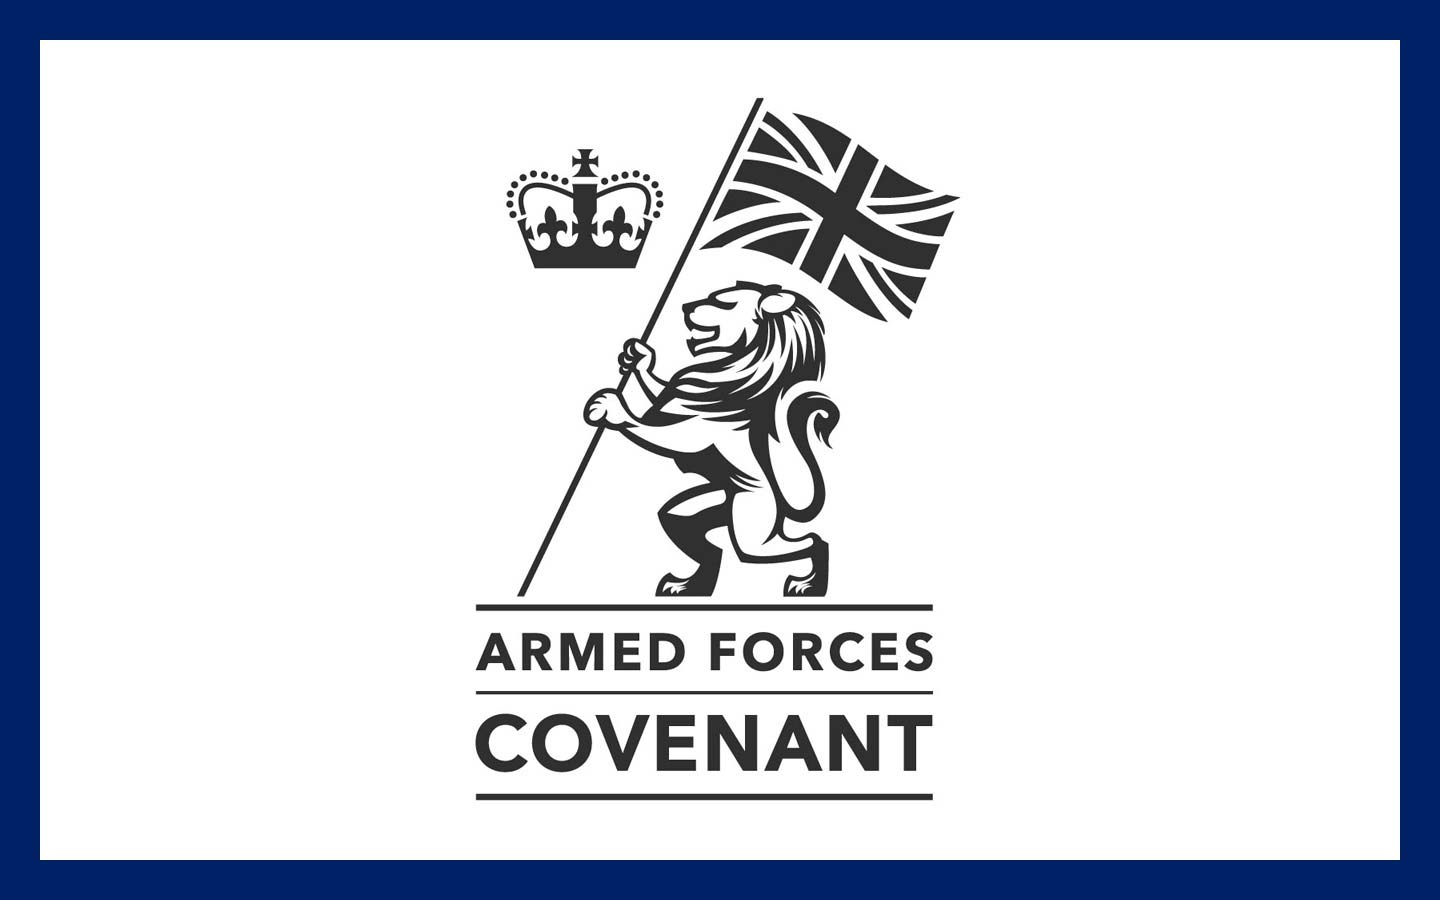 Armed-Forces-Corporate-Covenant.jpg